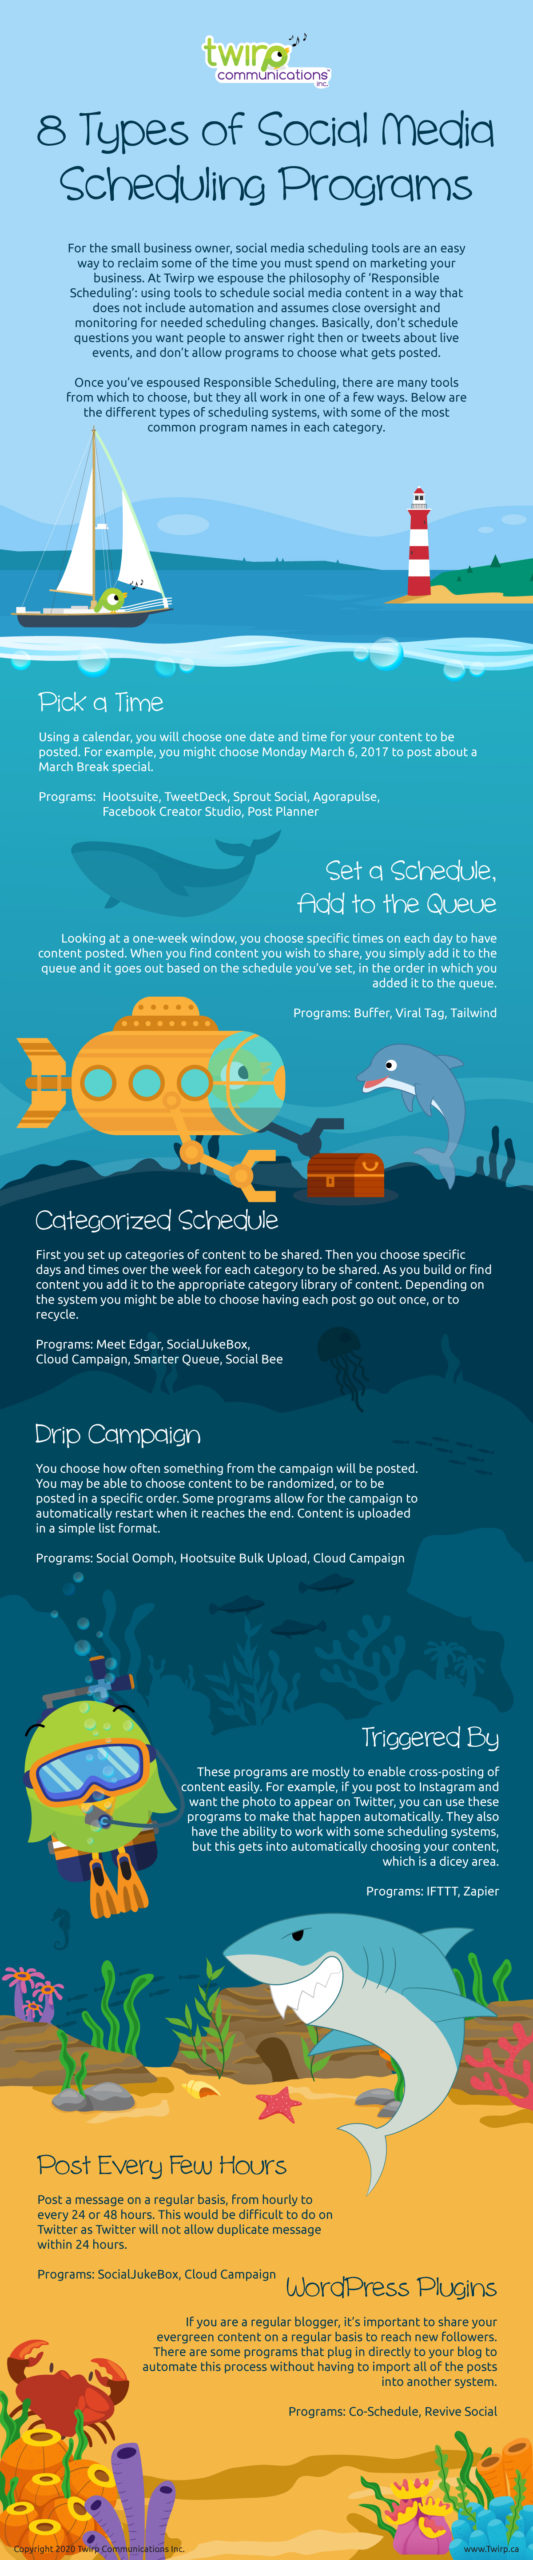 social media scheduler descriptions in infographic